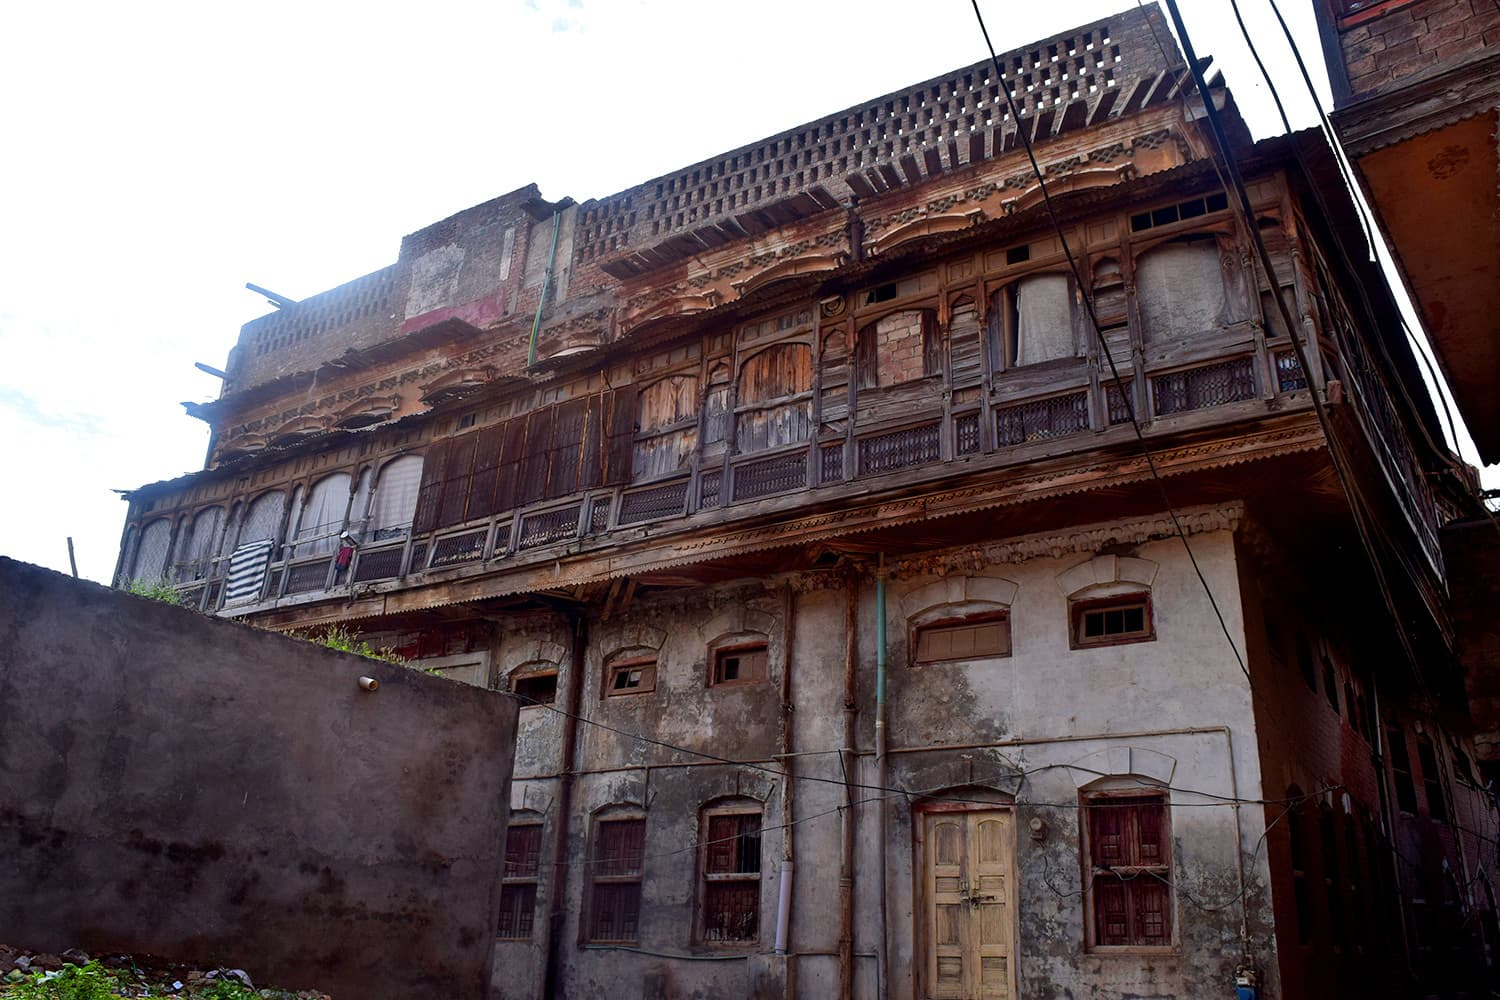 An imposing haveli once upon a time.